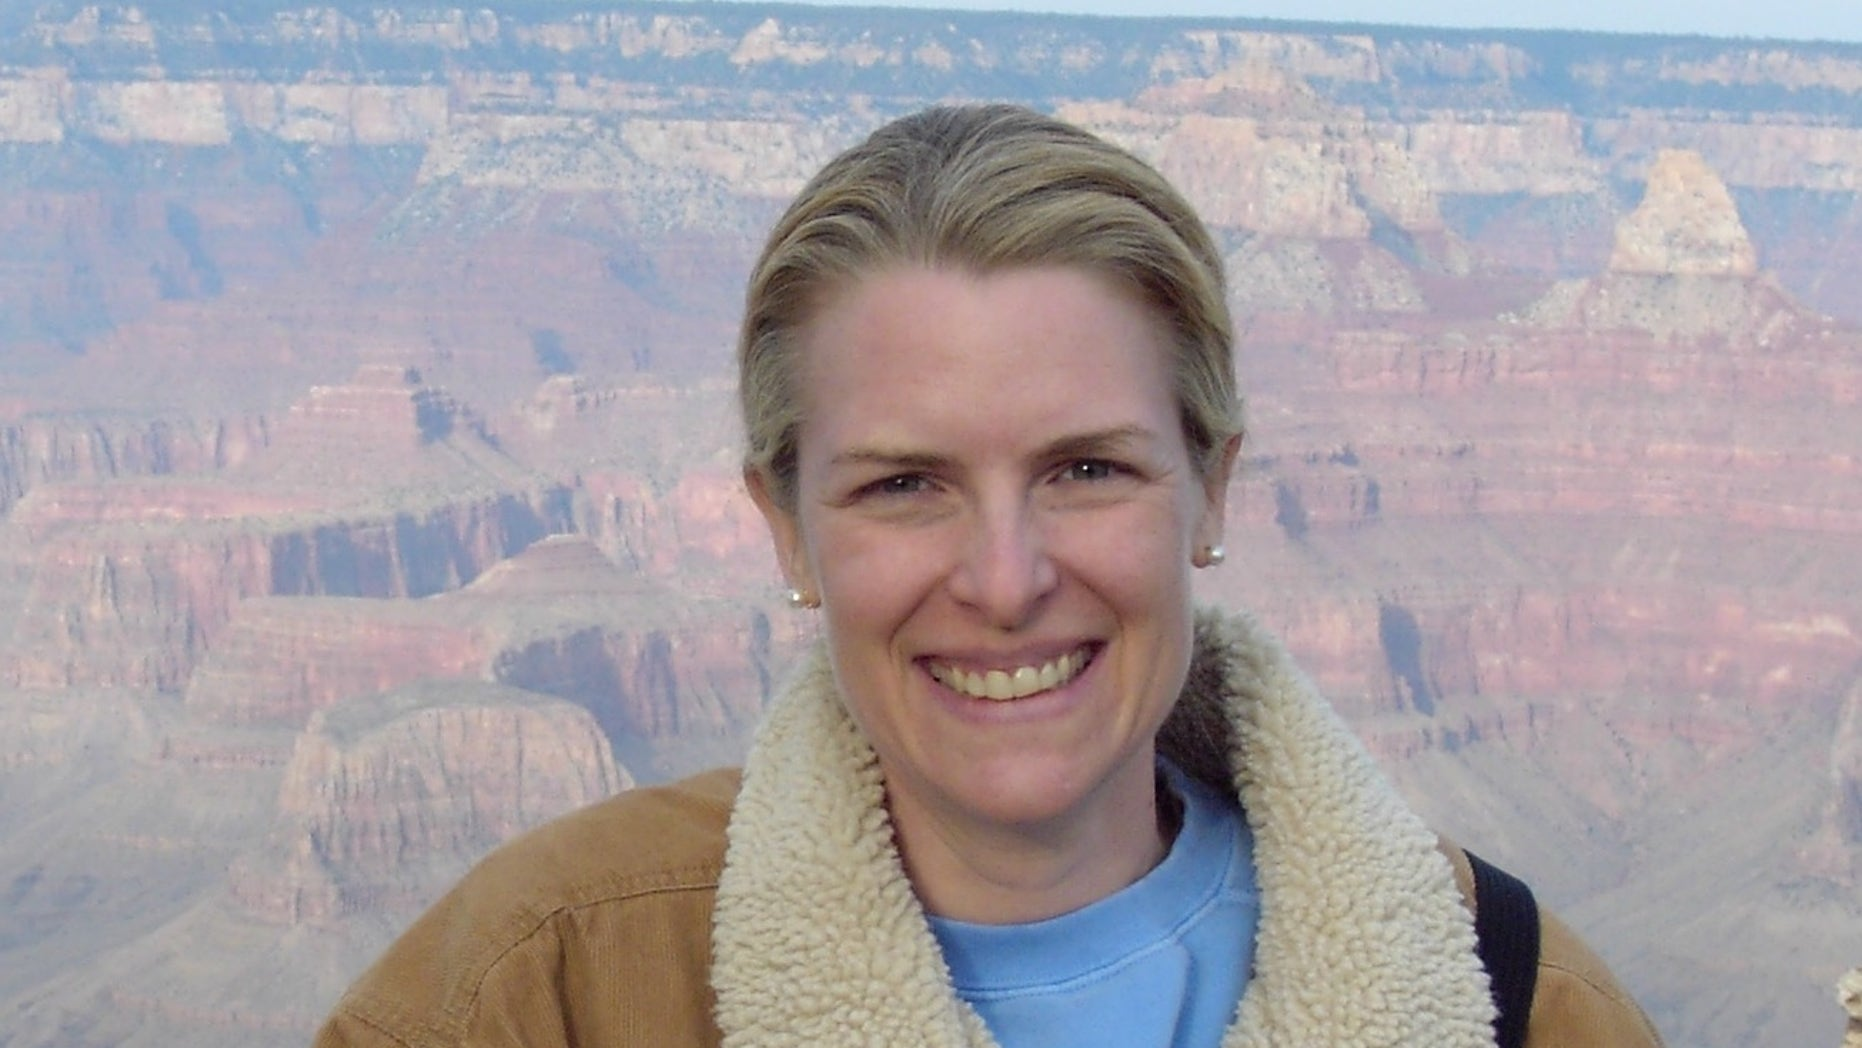 Janice Dean in 2004, one year before her MS diagnosis. (Courtesy of the author)